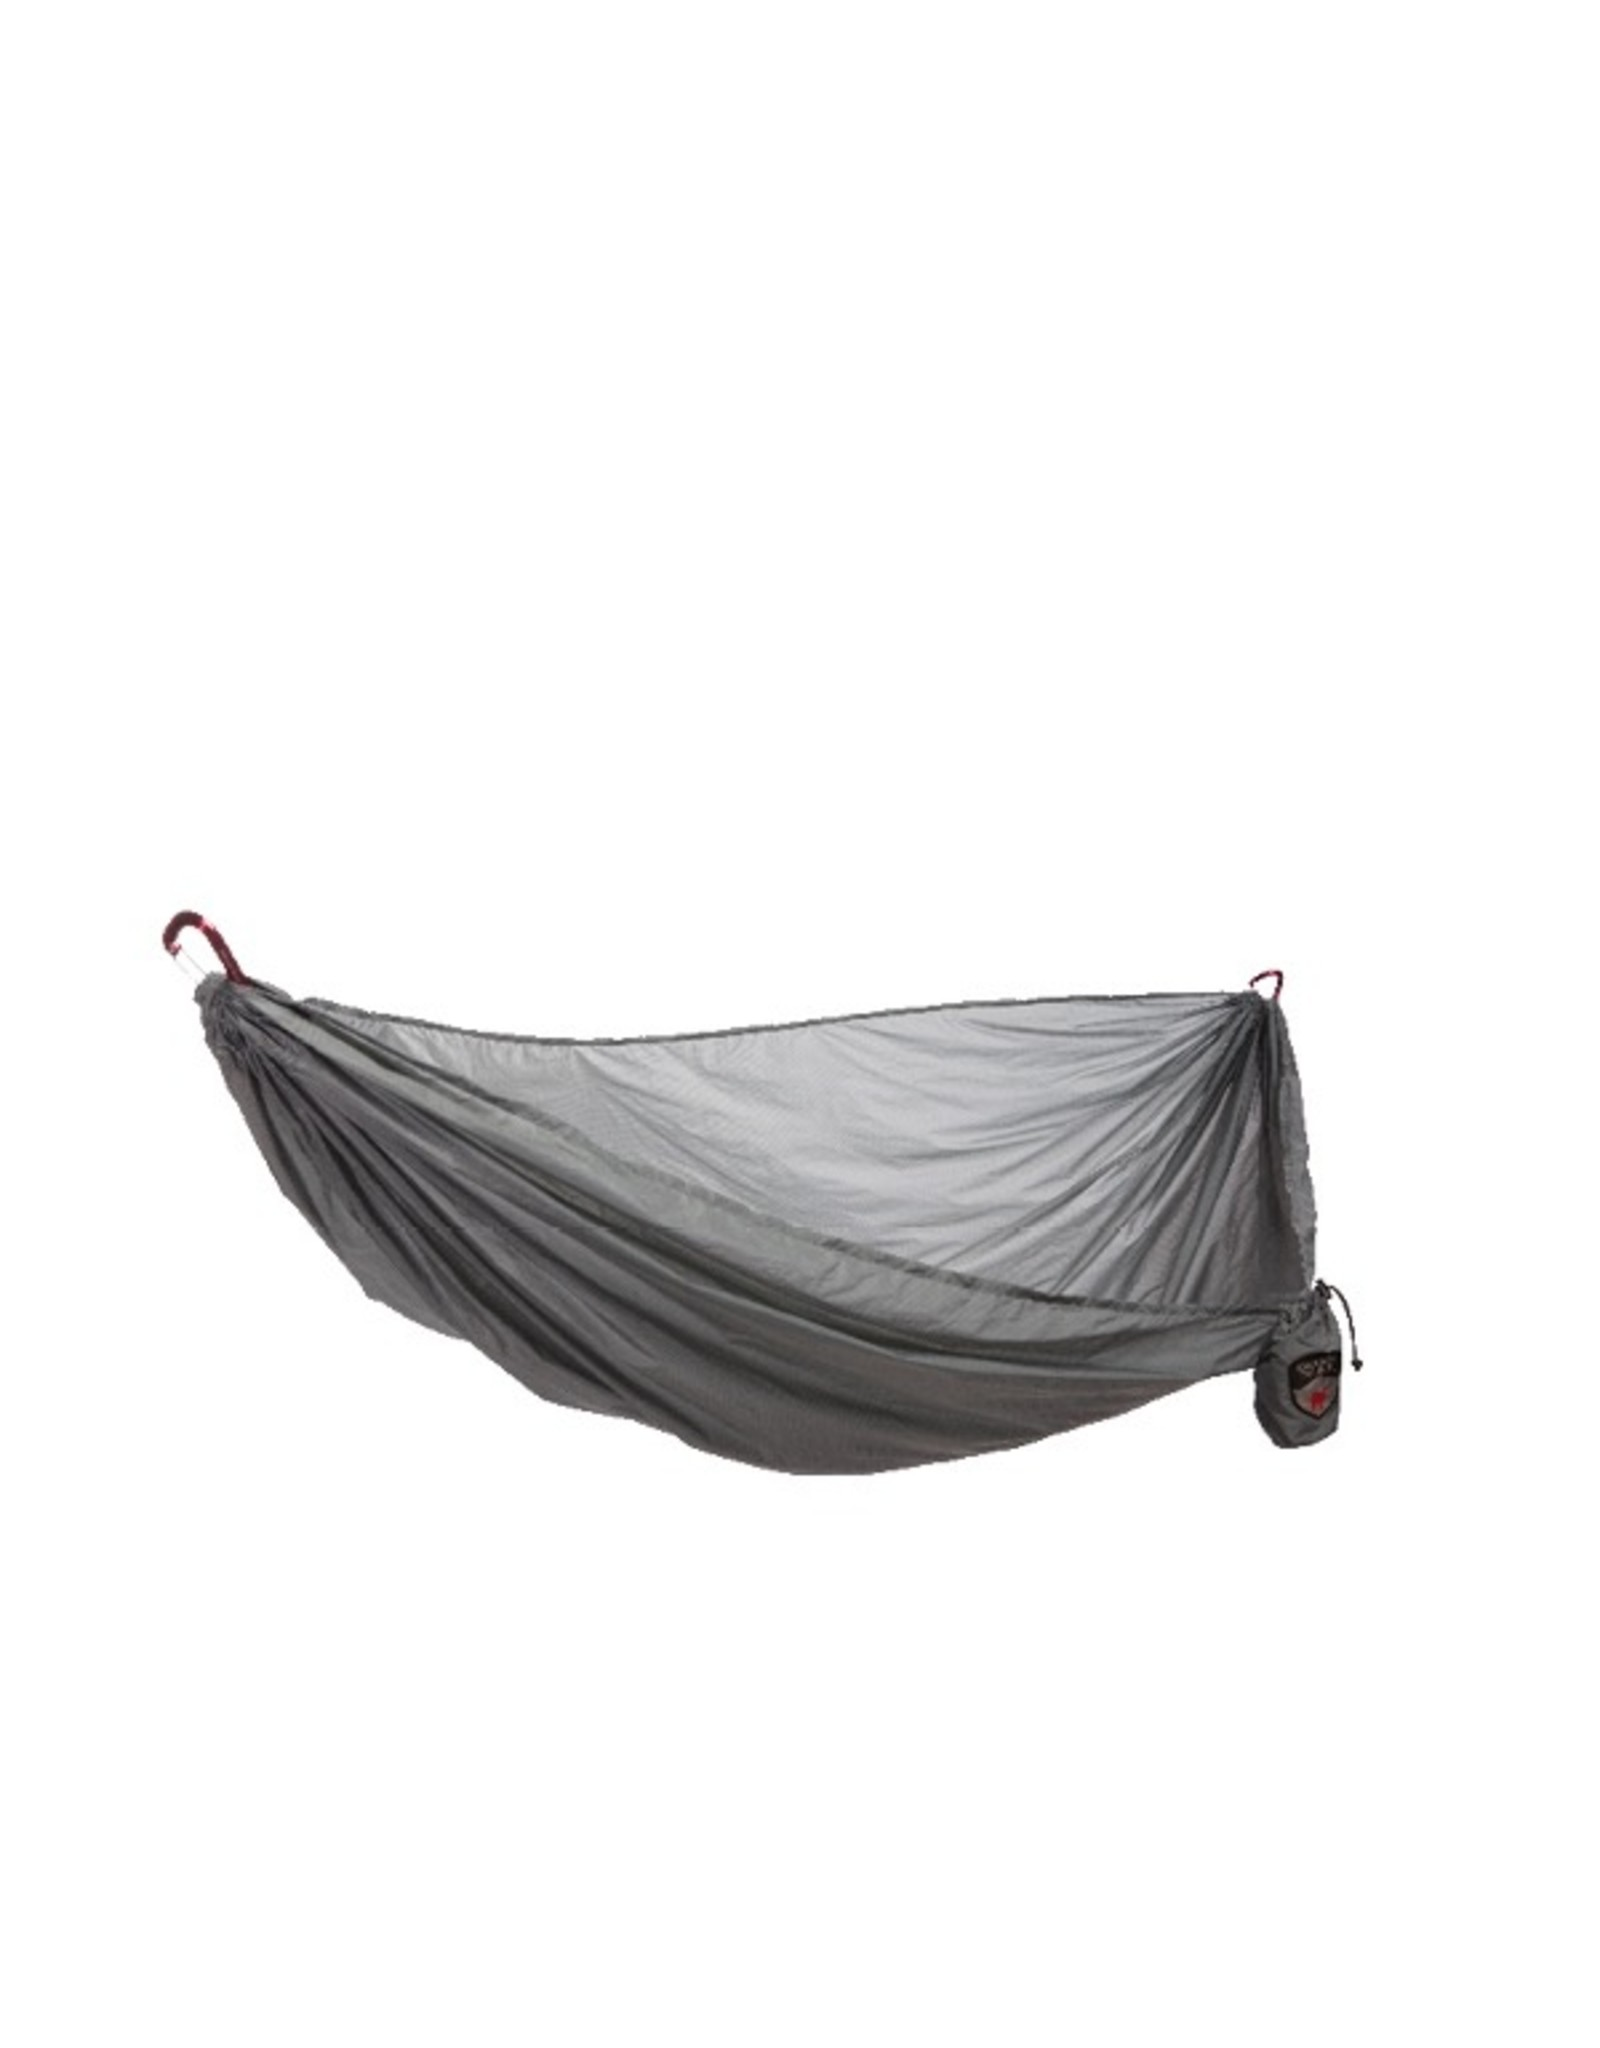 GRAND TRUNK NANO 7 HAMMOCK